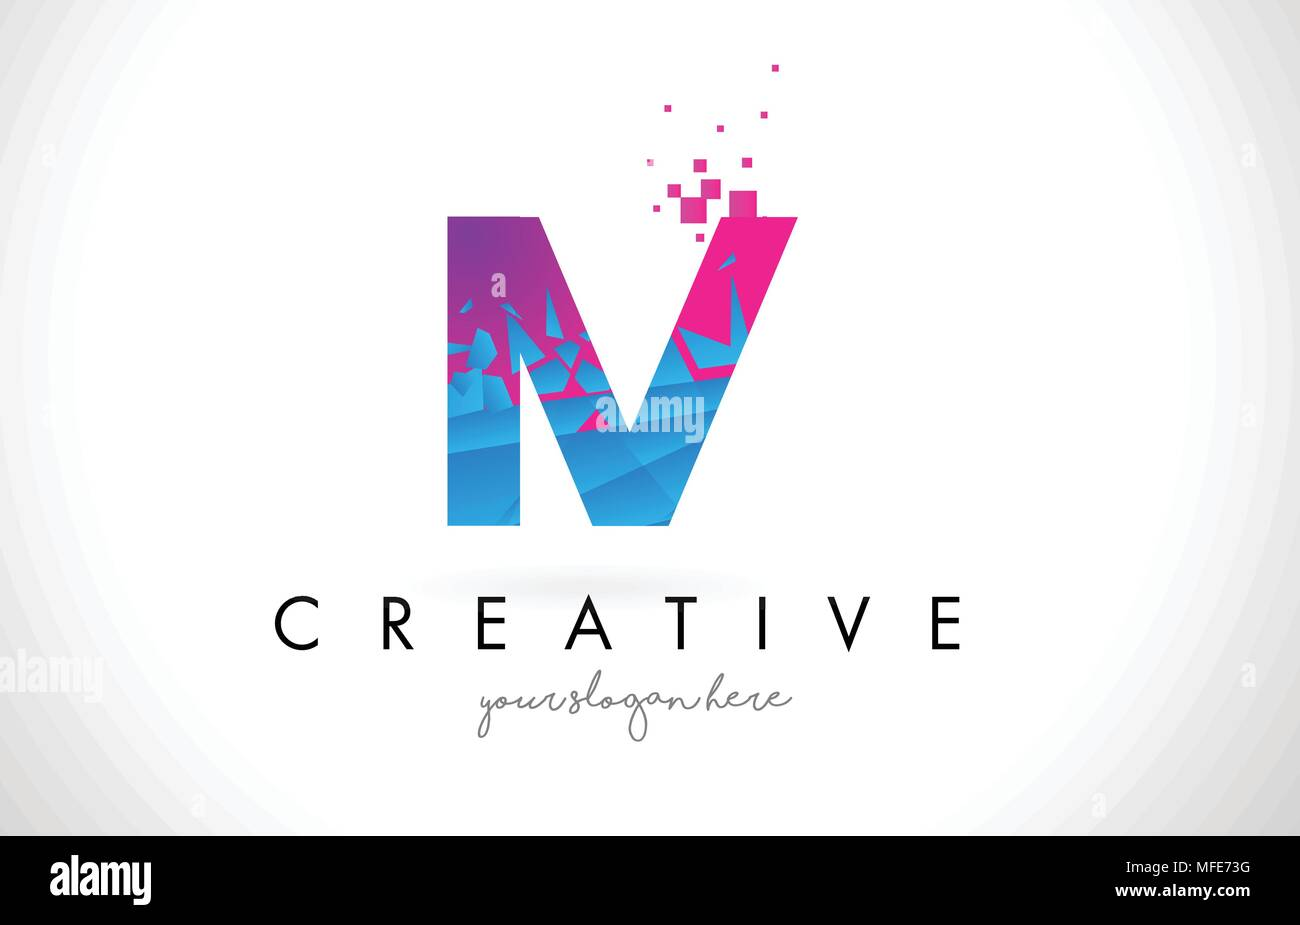 IV I V Letter Logo with Broken Shattered Blue Pink Triangles Texture Design Vector Illustration. - Stock Vector